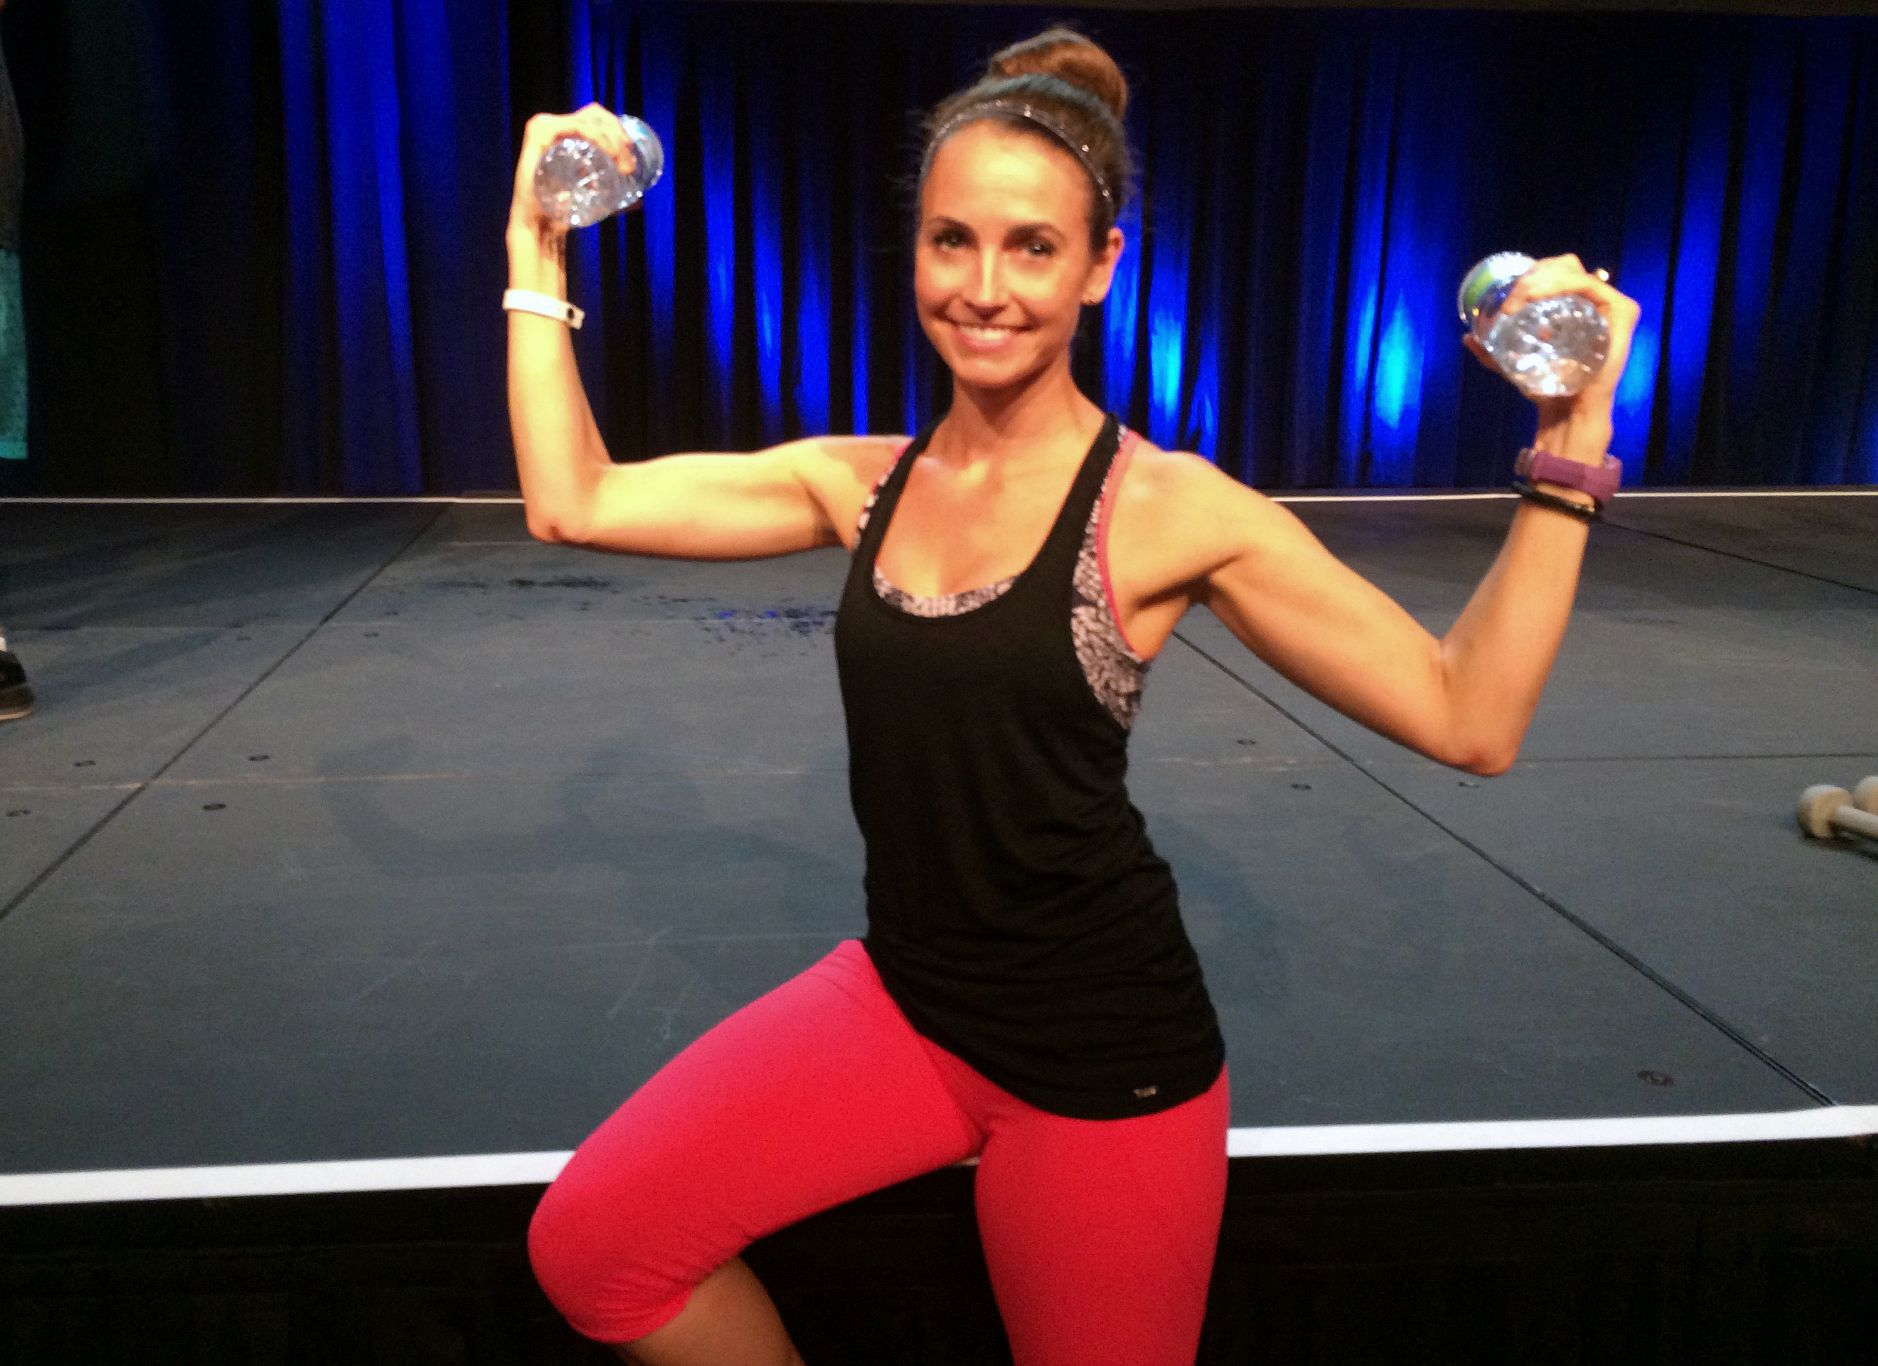 Heather at IDEA world fitness convention 2015